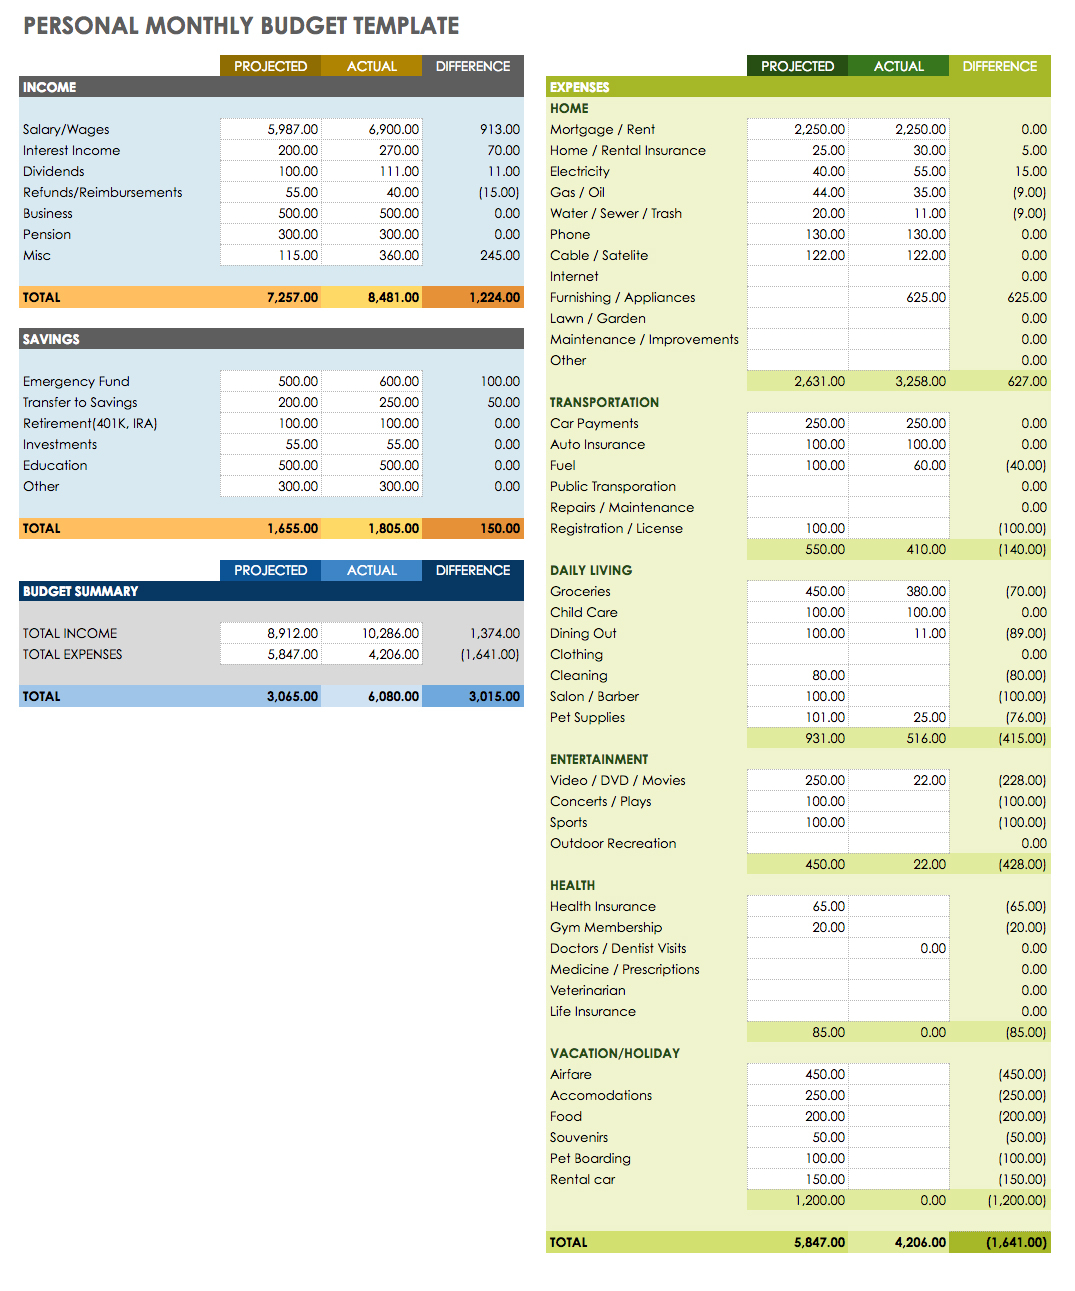 Monthly Budget Spreadsheet Free Download With Regard To Example Of Personal Budget Spreadsheet Free Download Ic Google